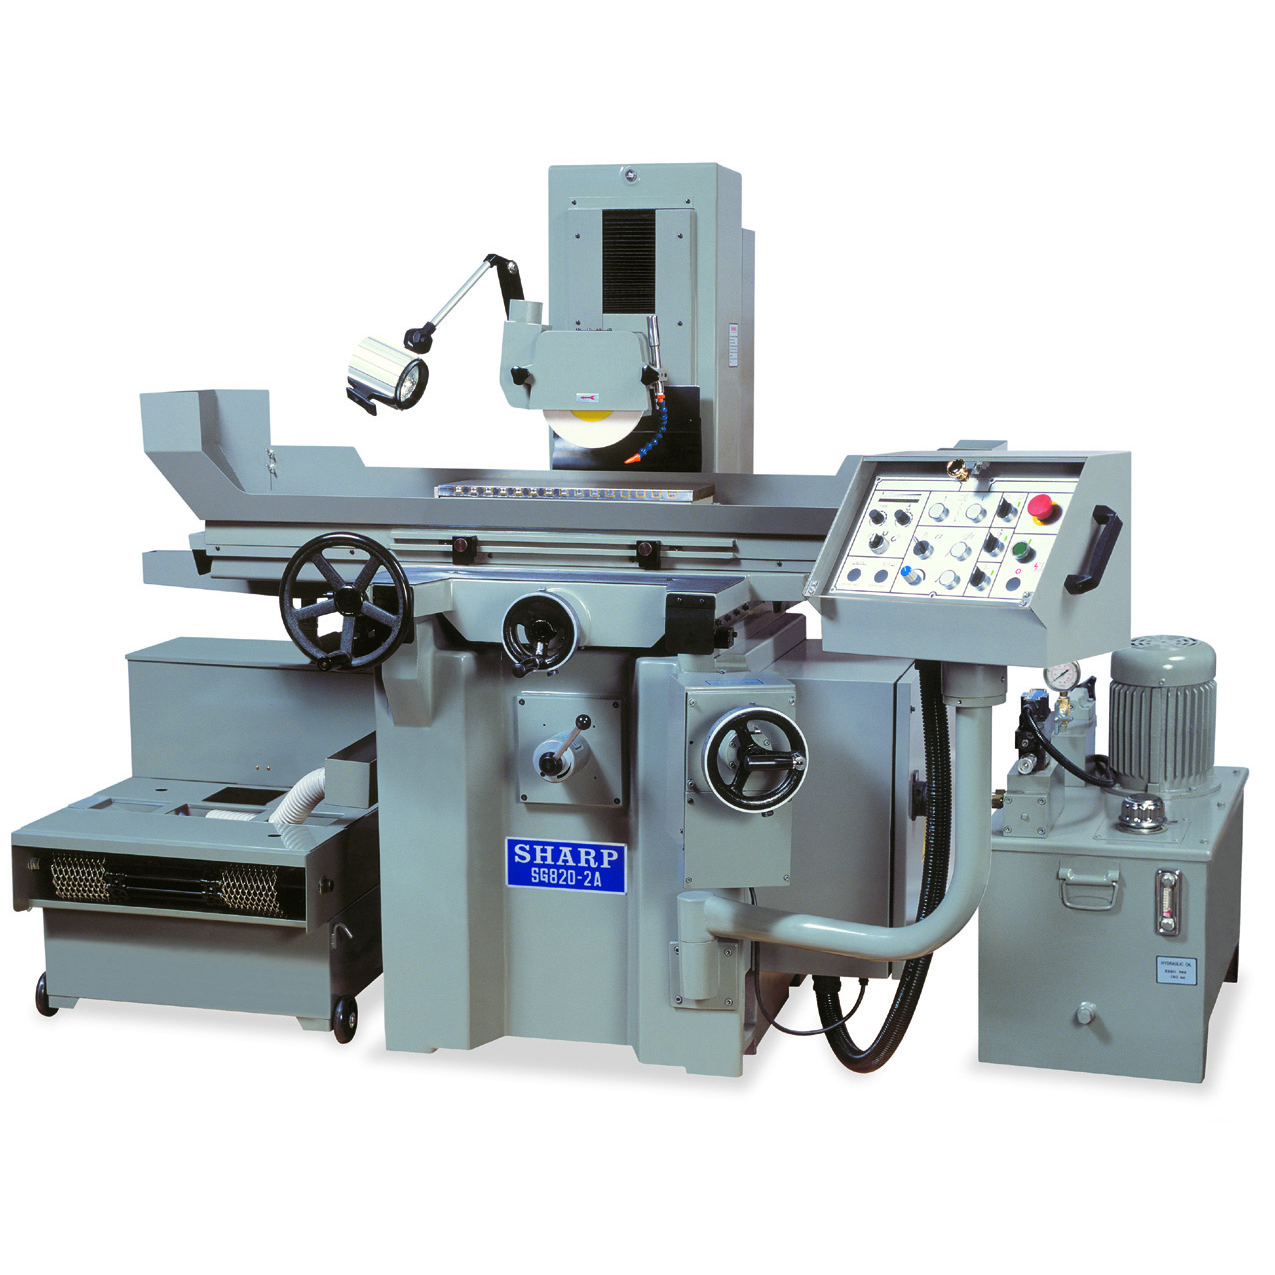 "NEW 6"" x 18"" SHARP SG-618-2A AUTOMATIC SURFACE GRINDER"